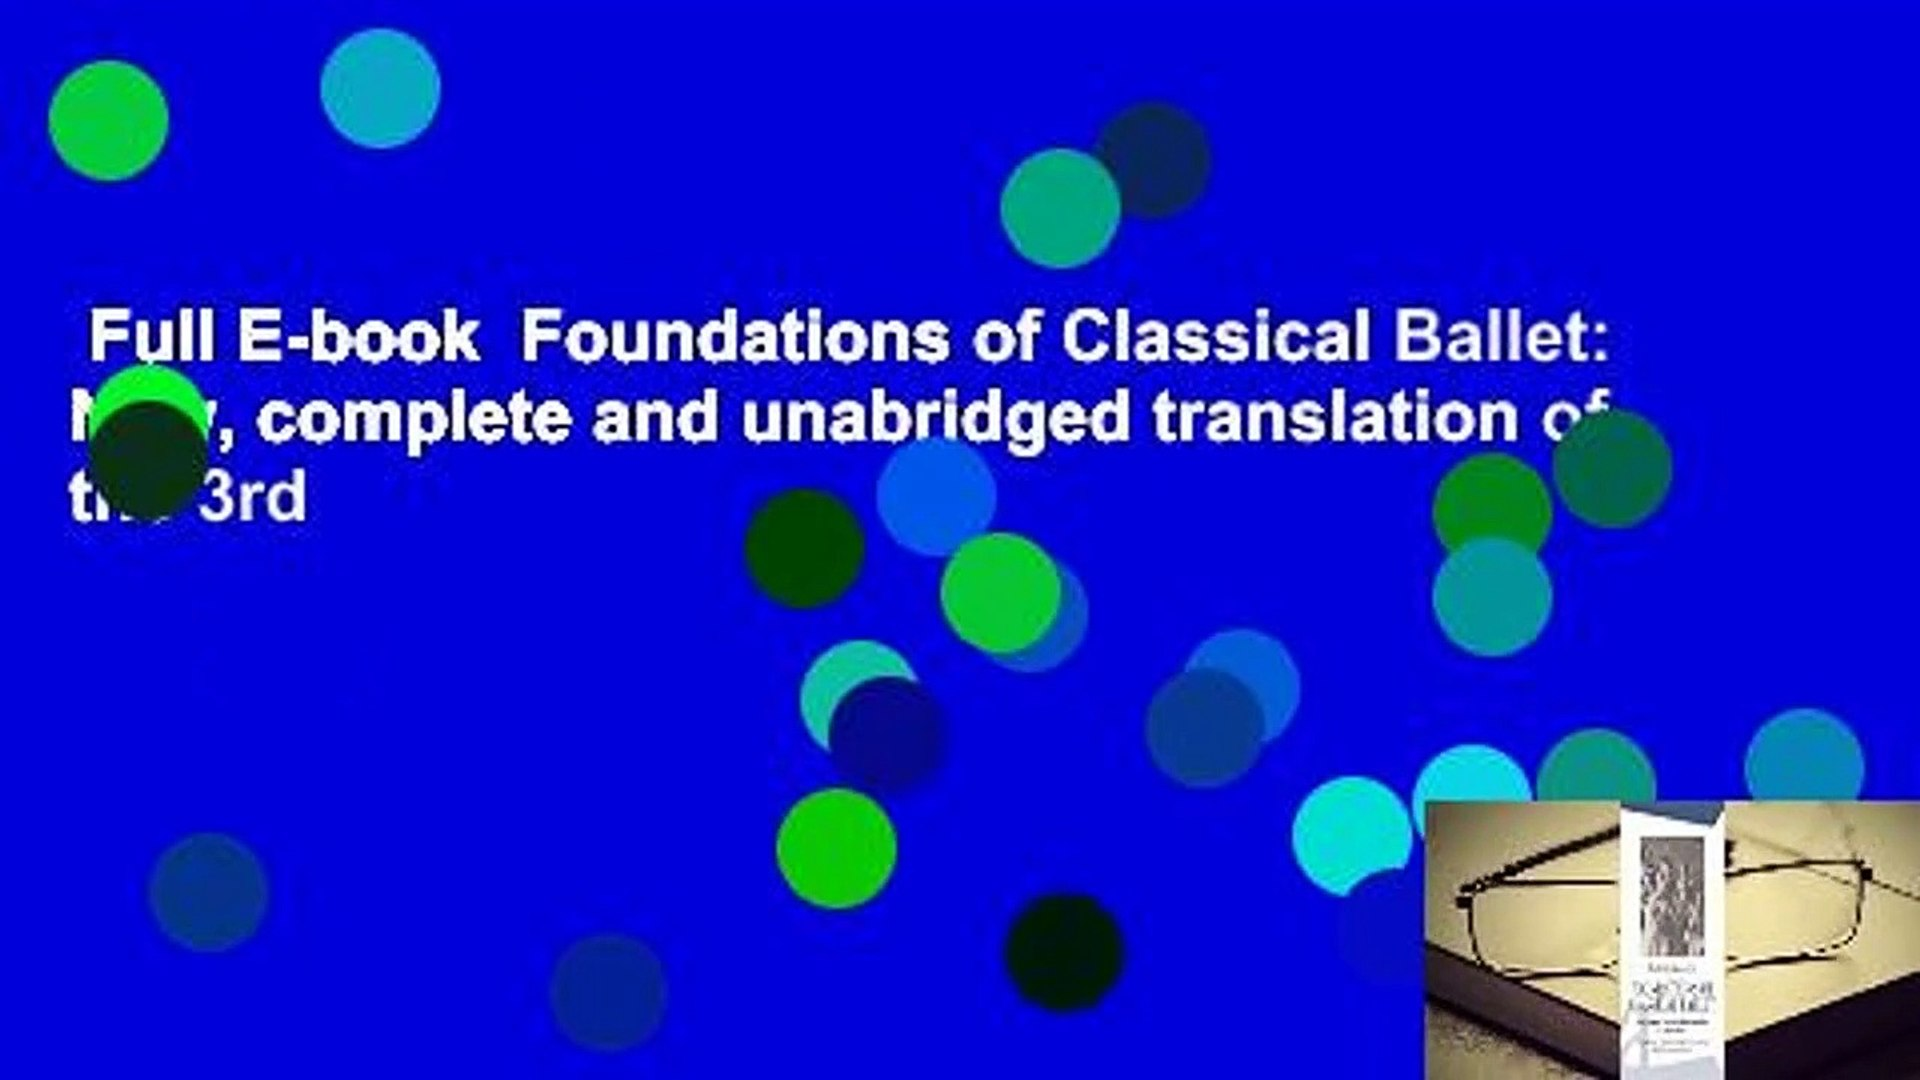 complete and unabridged translation of the 3rd edition New Foundations of Classical Ballet